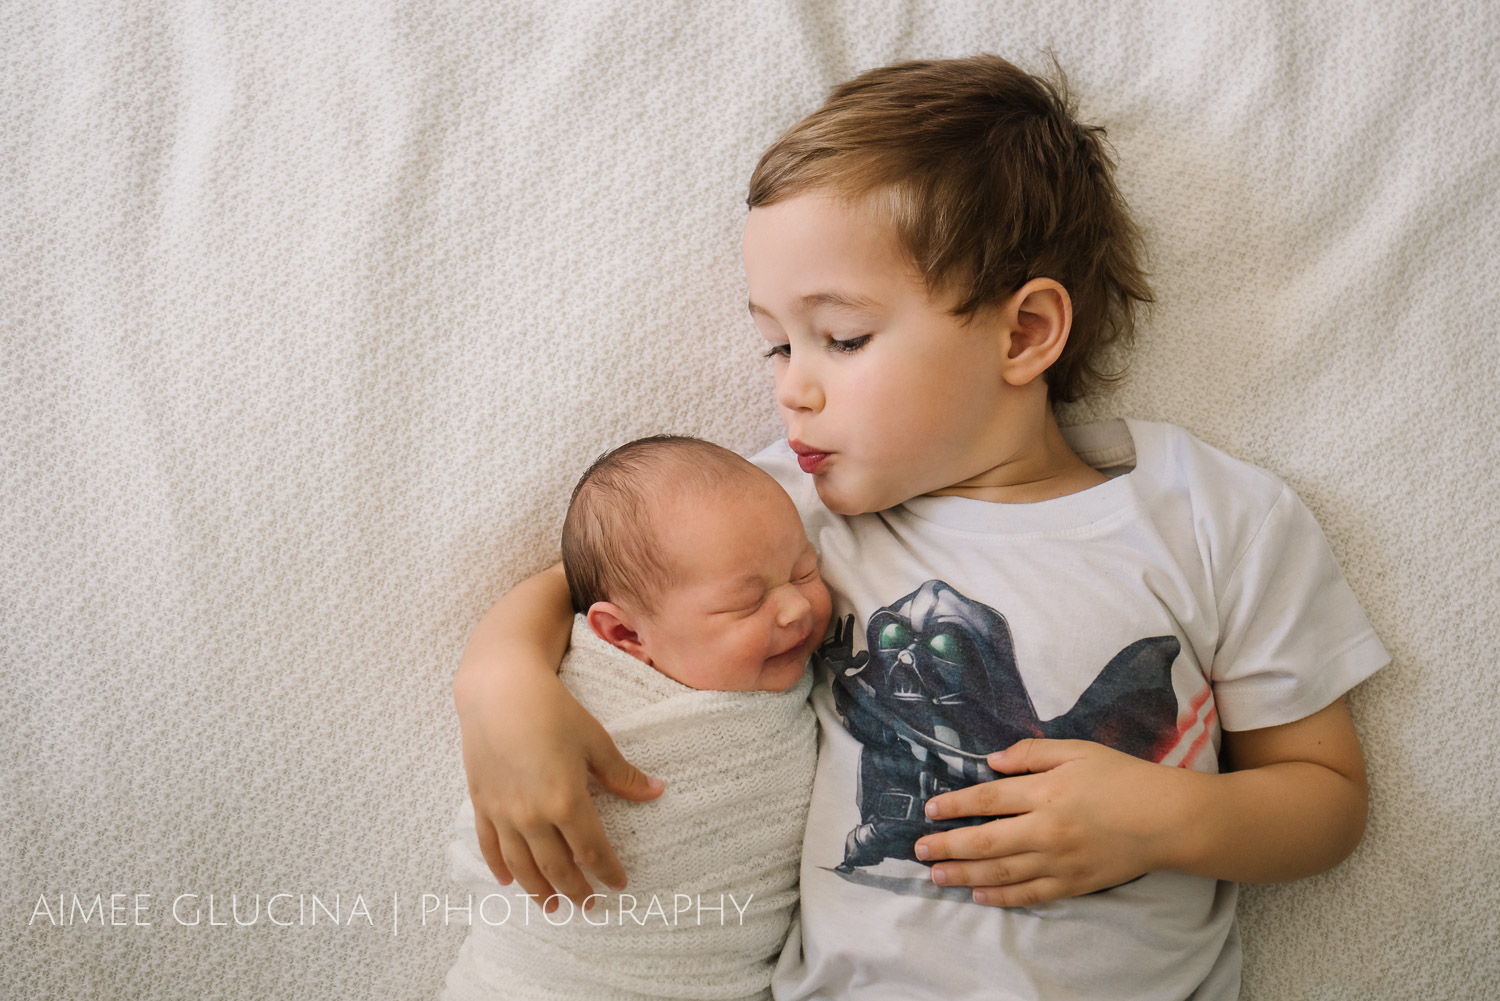 Callaghan Lifestyle Newborn Session by Aimee Glucina Photography-6.jpg